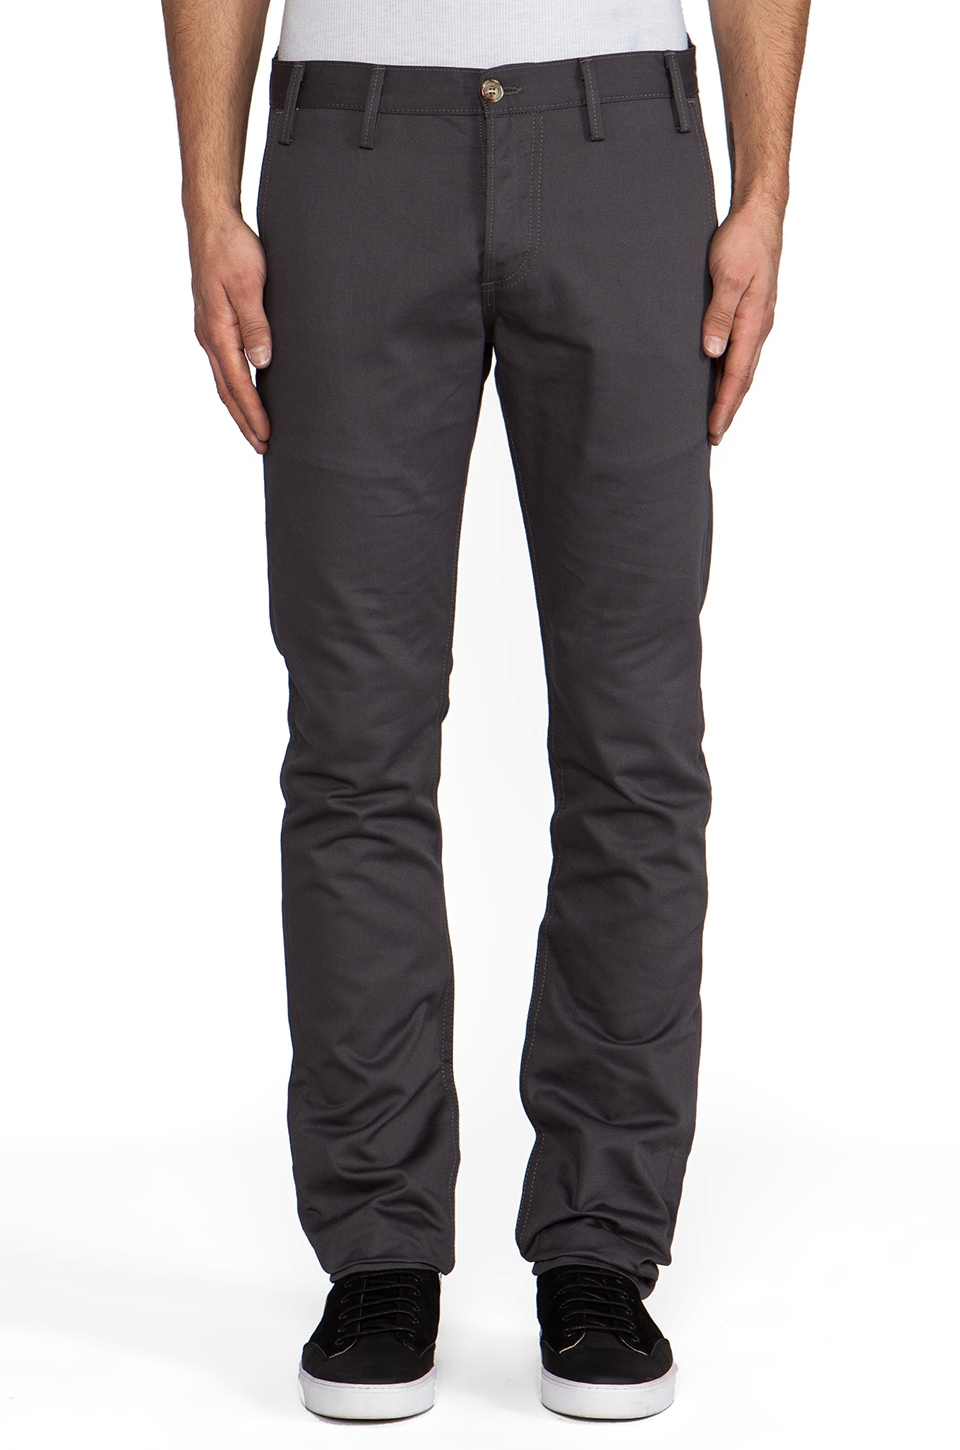 Rogue Territory Officer Trouser 8oz Twill in Grey